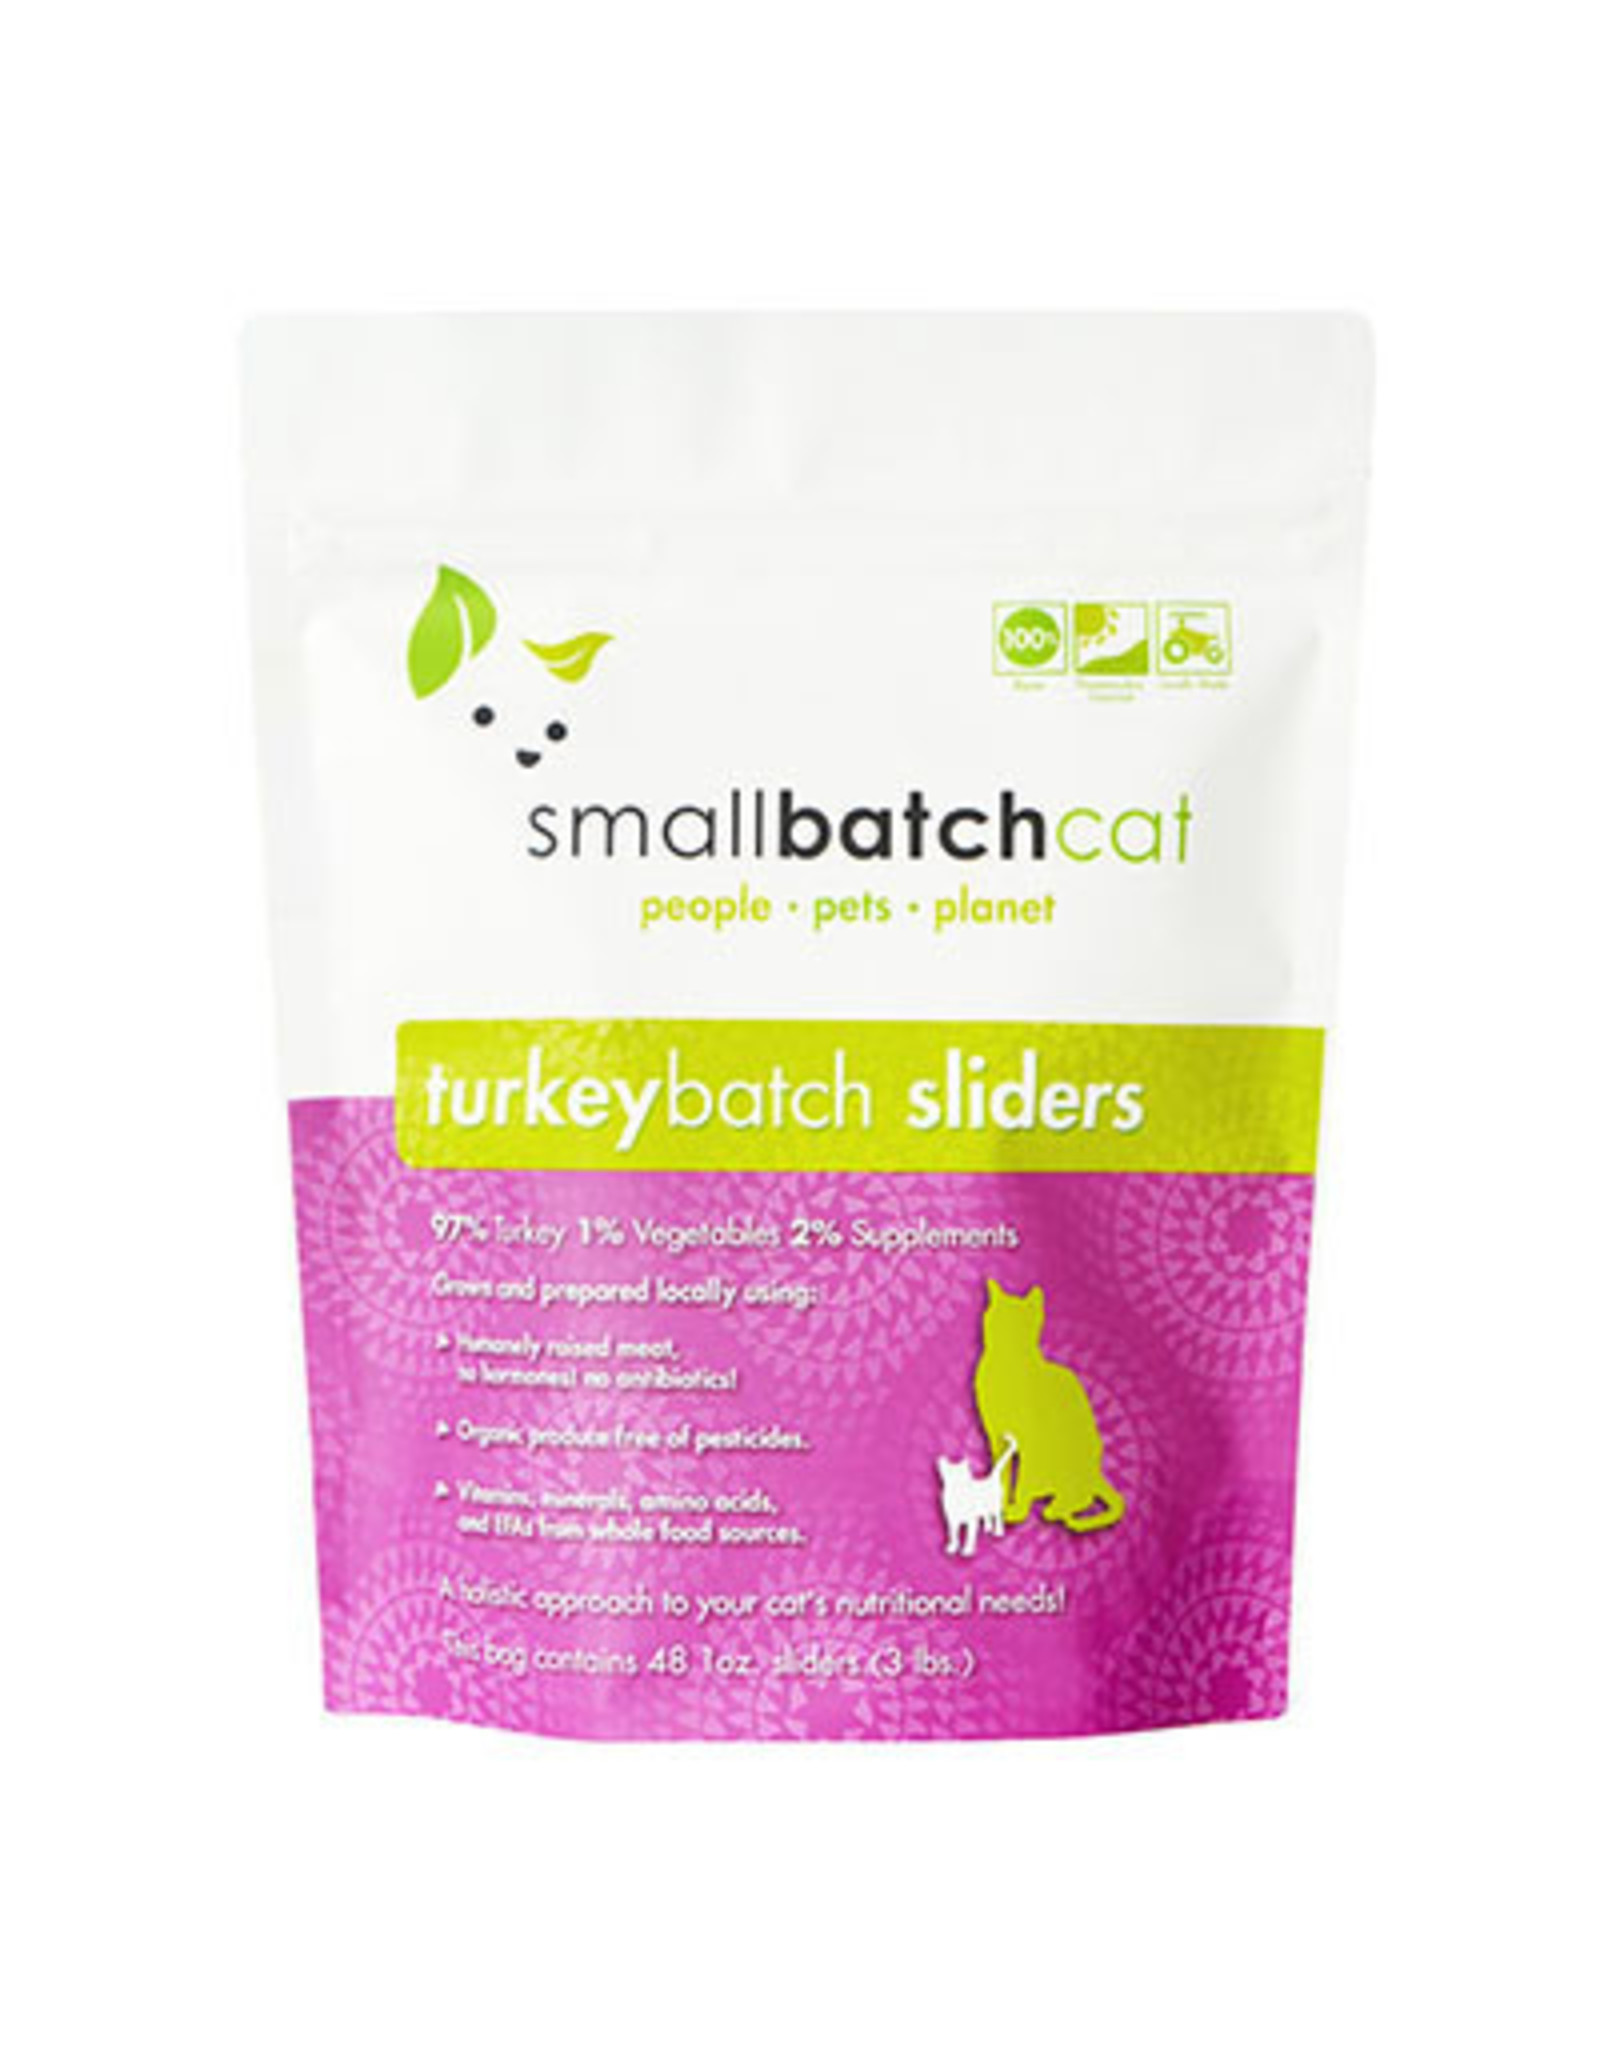 Smallbatch SMALLBATCH CAT FROZEN RAW TURKEY BATCH 48-COUNT SLIDERS